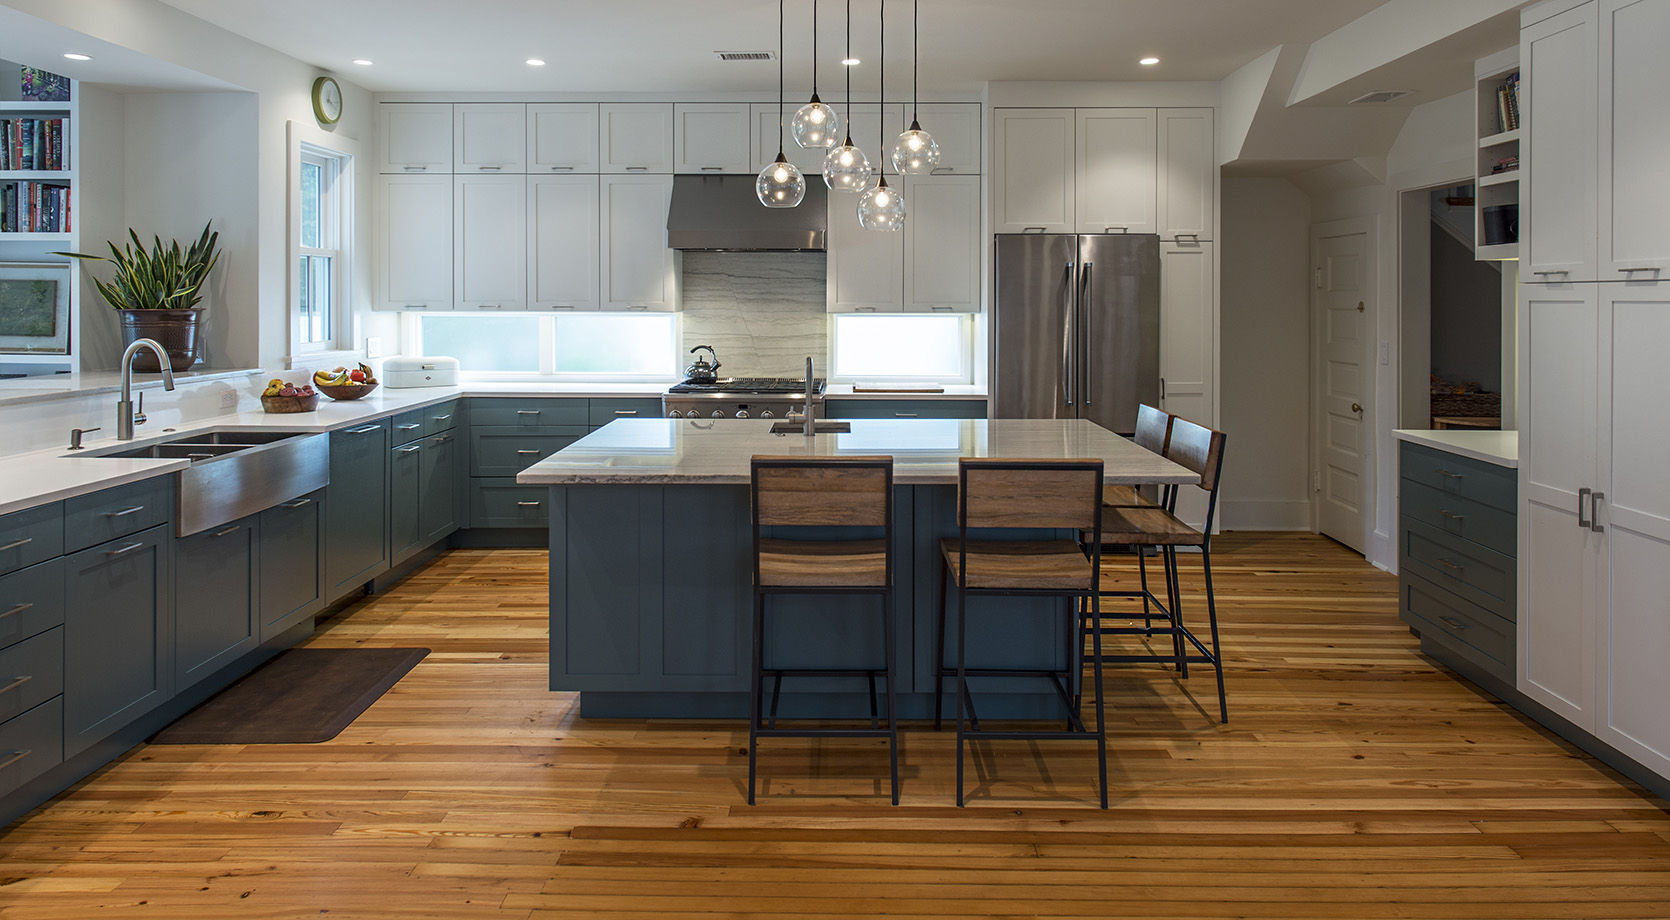 A extra large kitchen island gives plenty of room for cooking and conversation